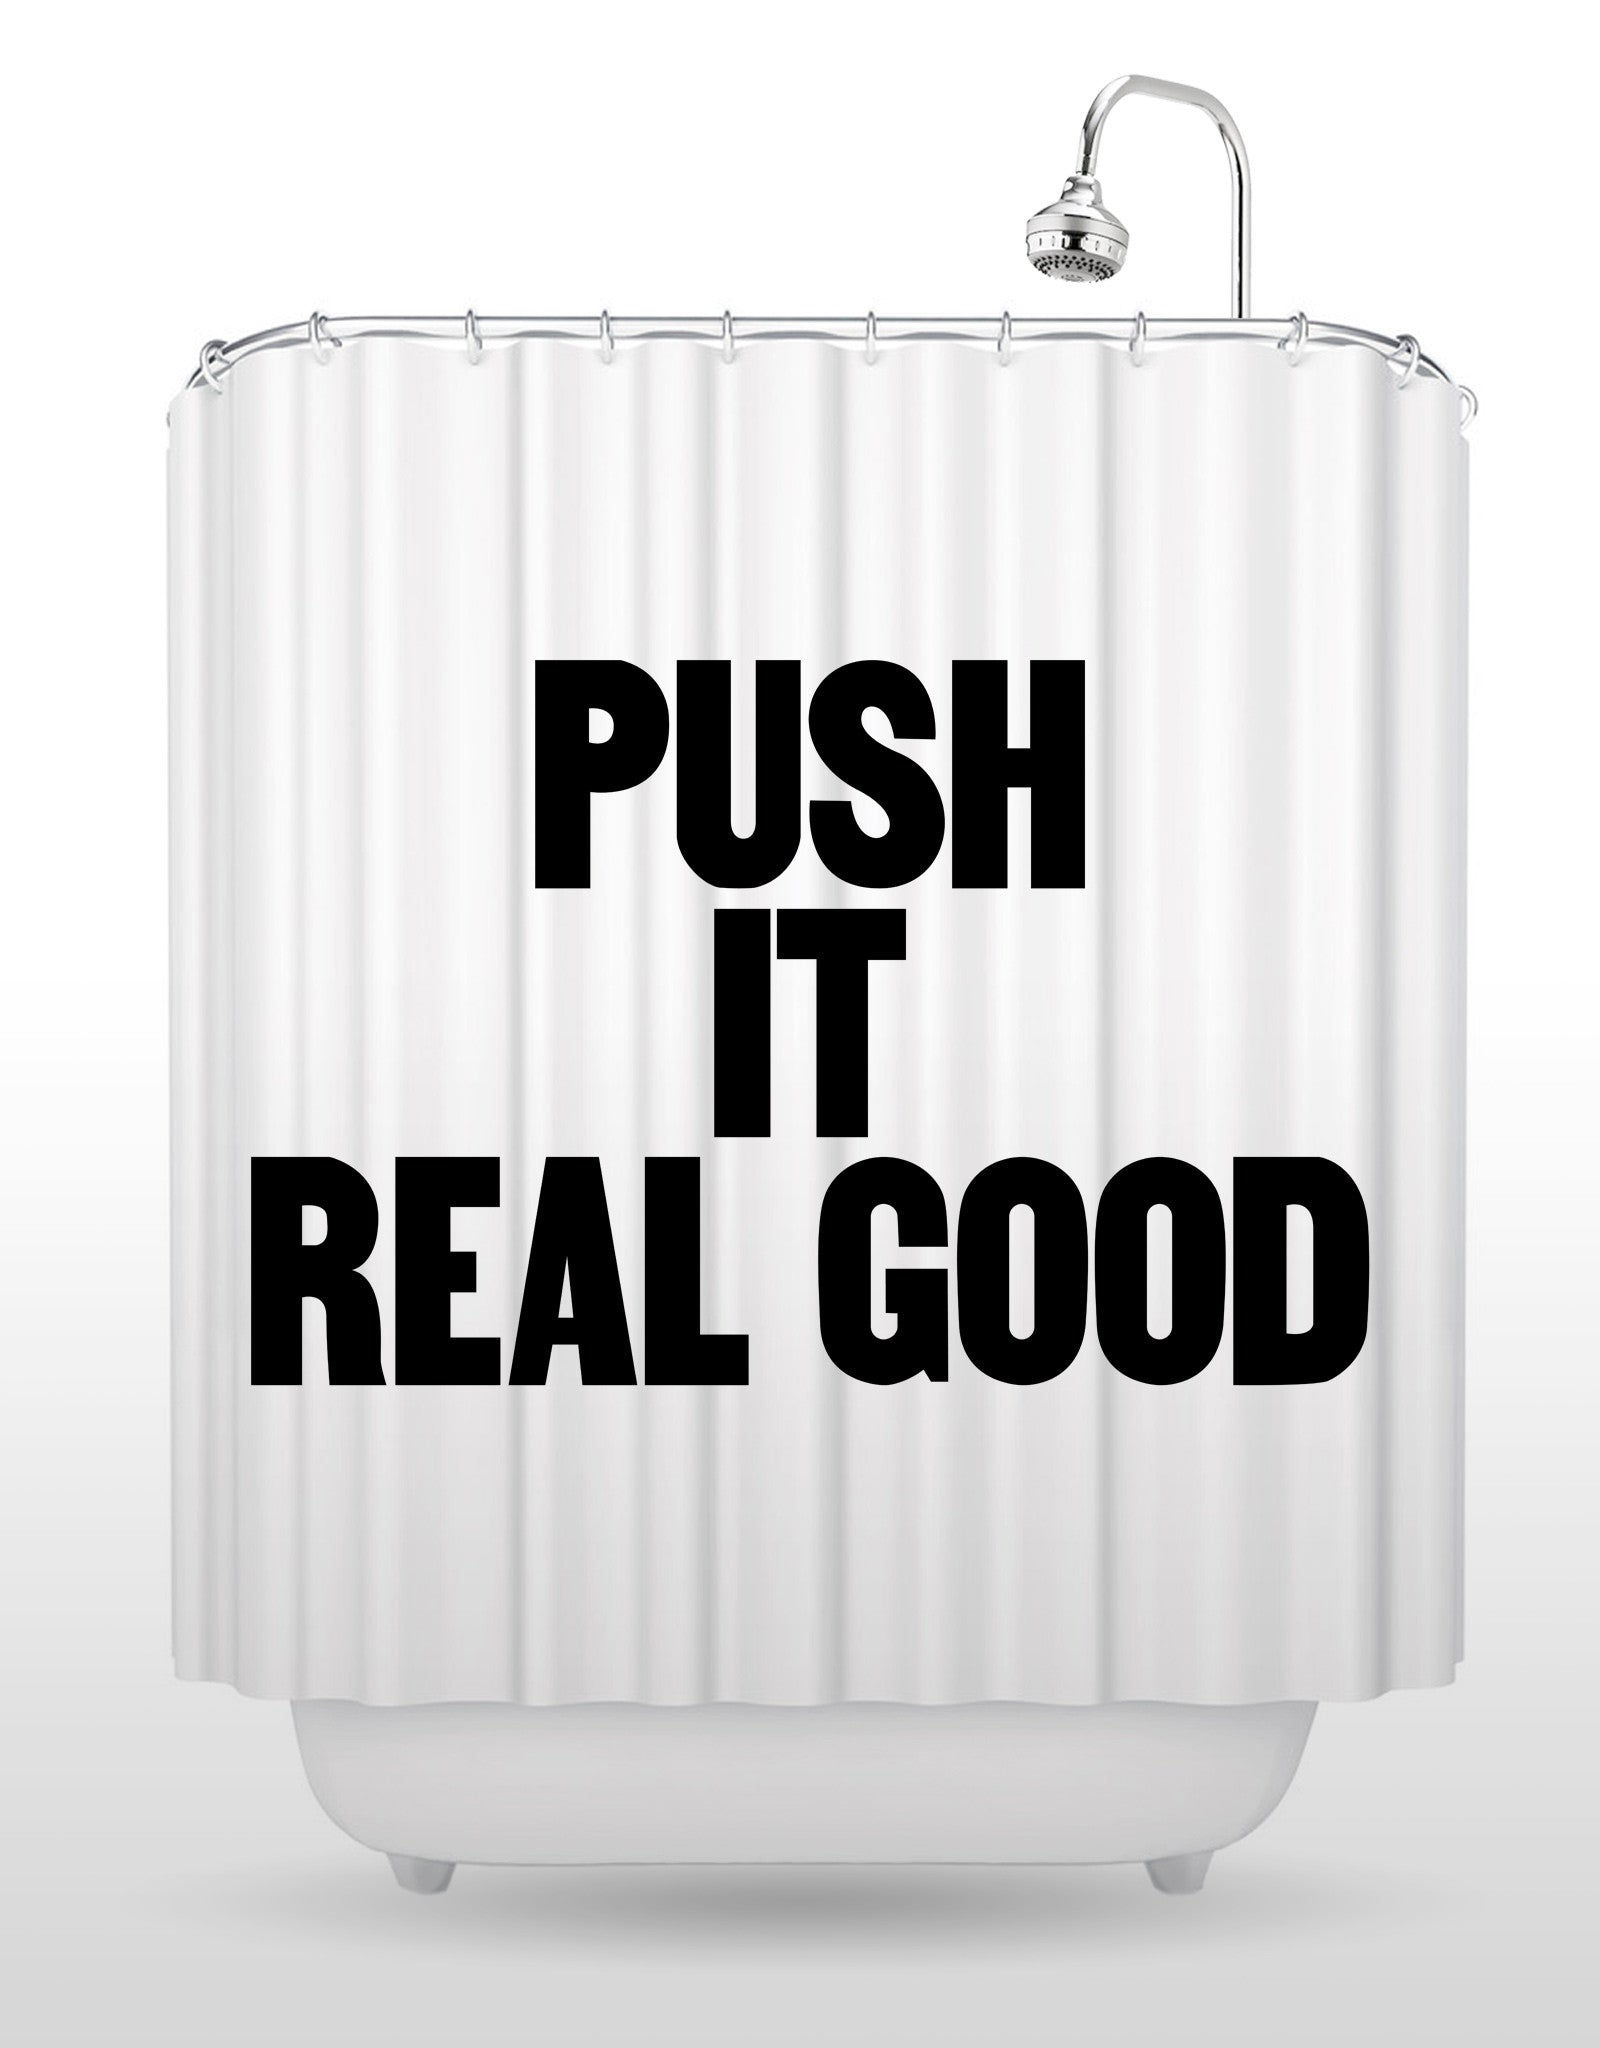 Push It Real Good Shower Curtain – Blik